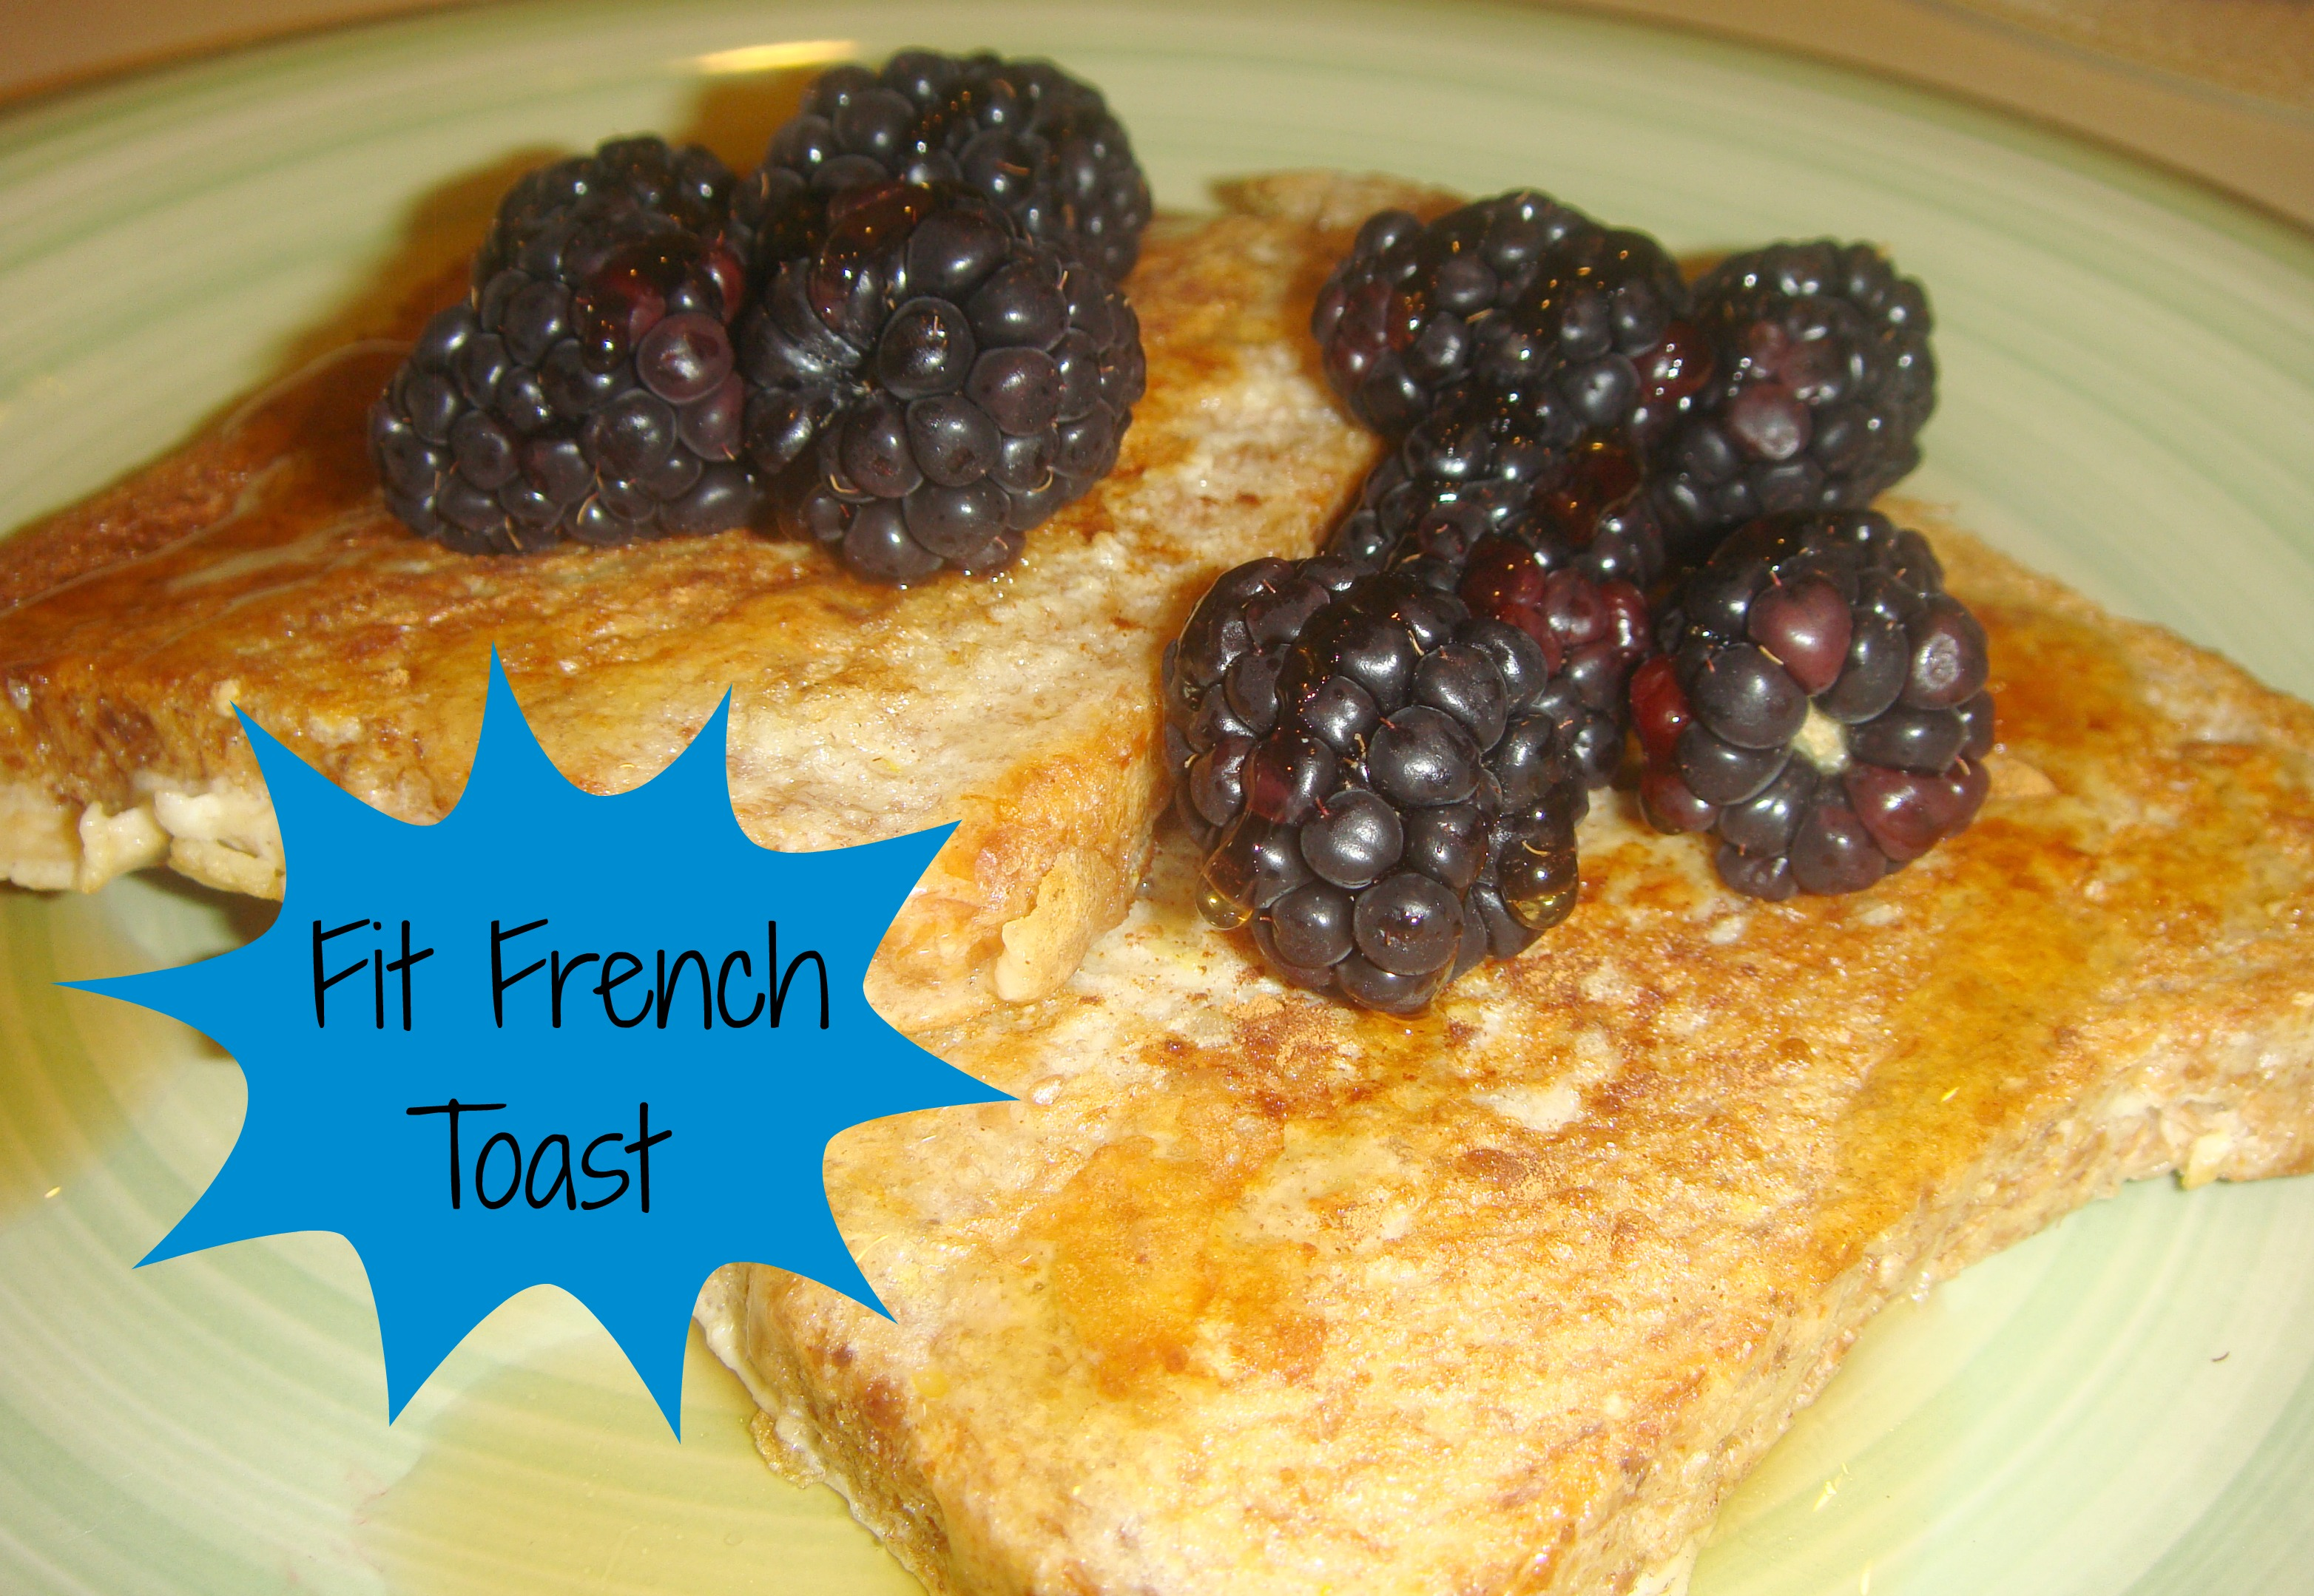 fit french toast 1